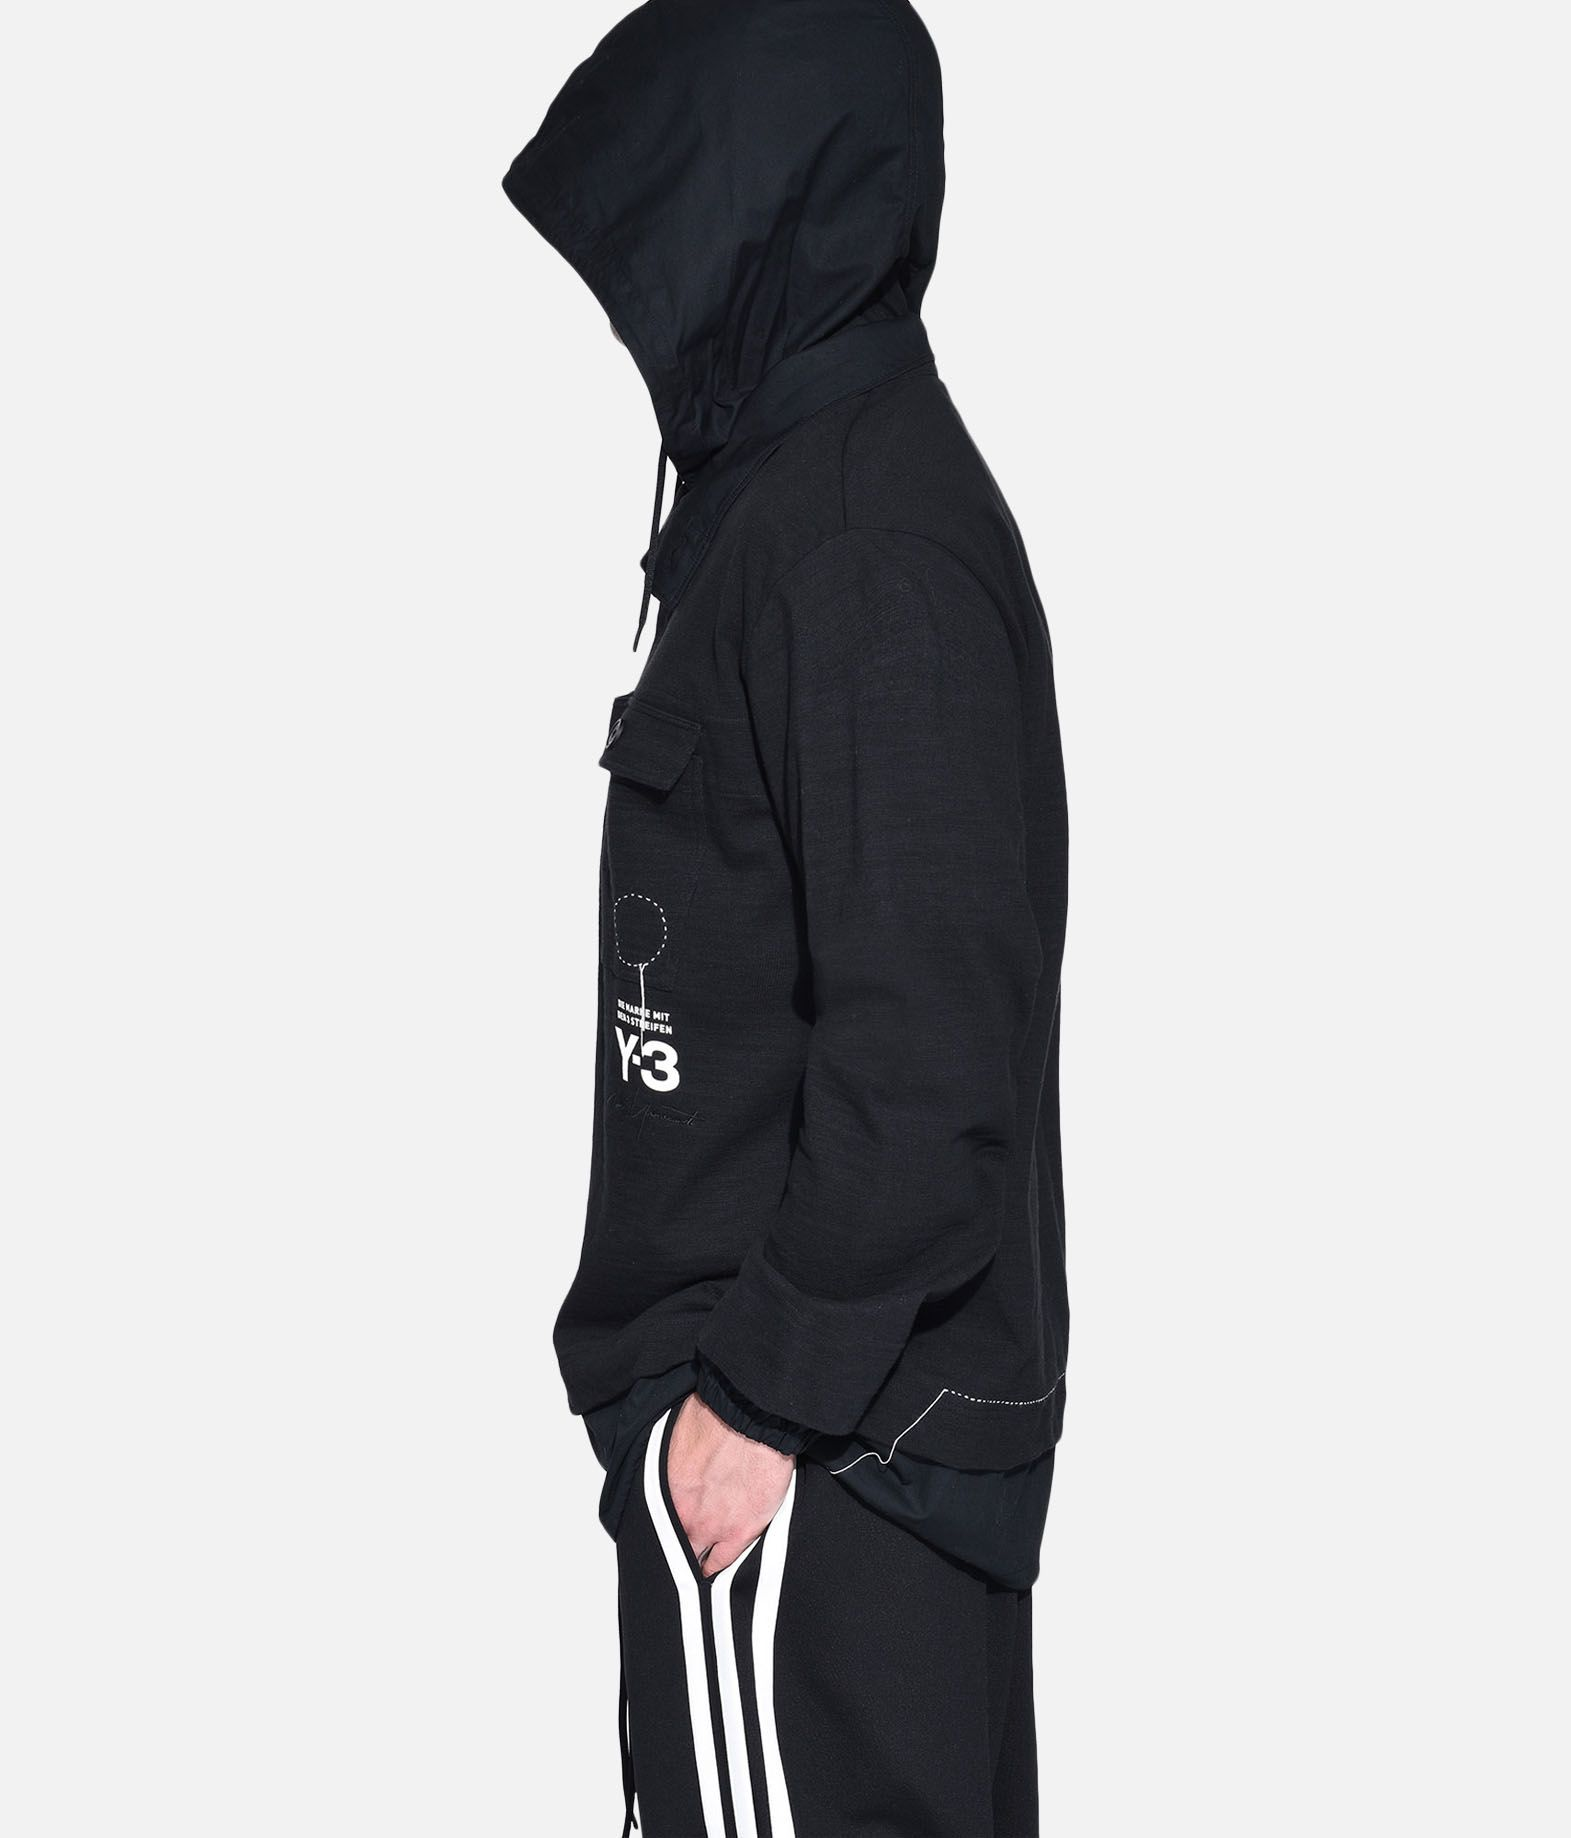 Y-3 Y-3 Sashiko Layered Hoodie Hooded sweatshirt Man e